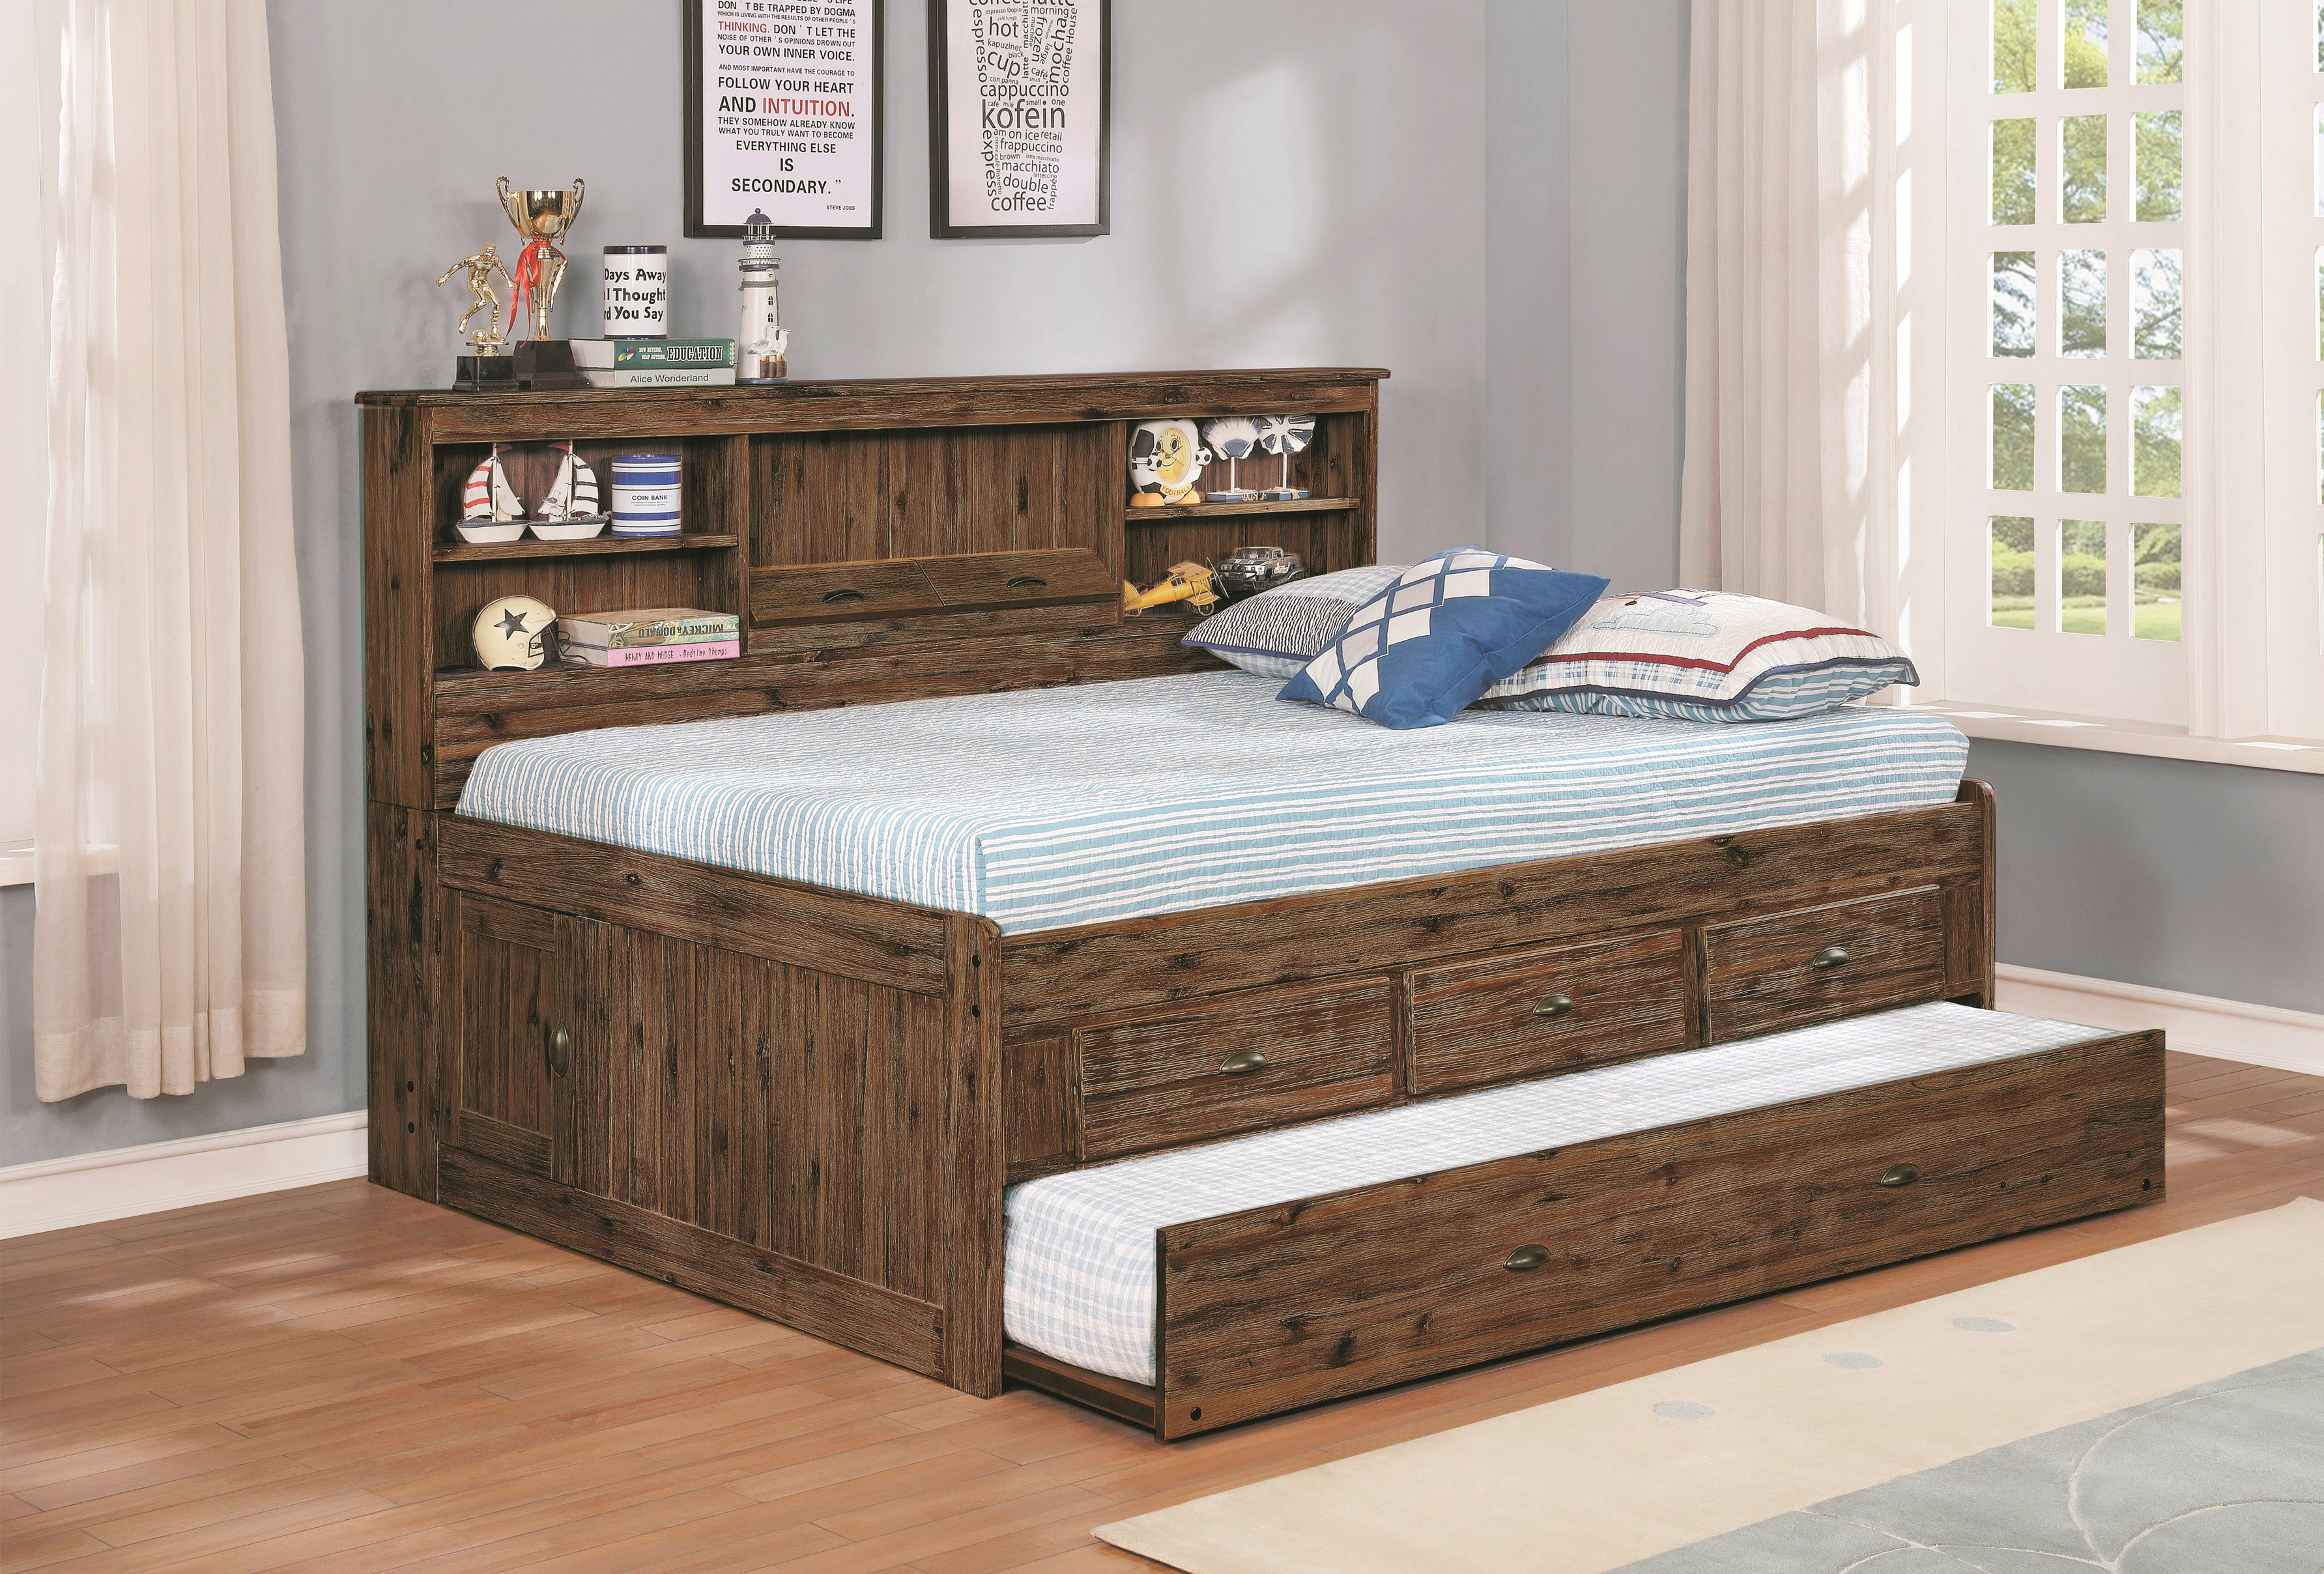 American Furniture Classics Model 4823 K3 Solid Acacia Hardwood Full Sized Daybed With Three Drawers Twin Sized Trundle Unit And Lengthwise Storage Headboard Walmart Com Walmart Com